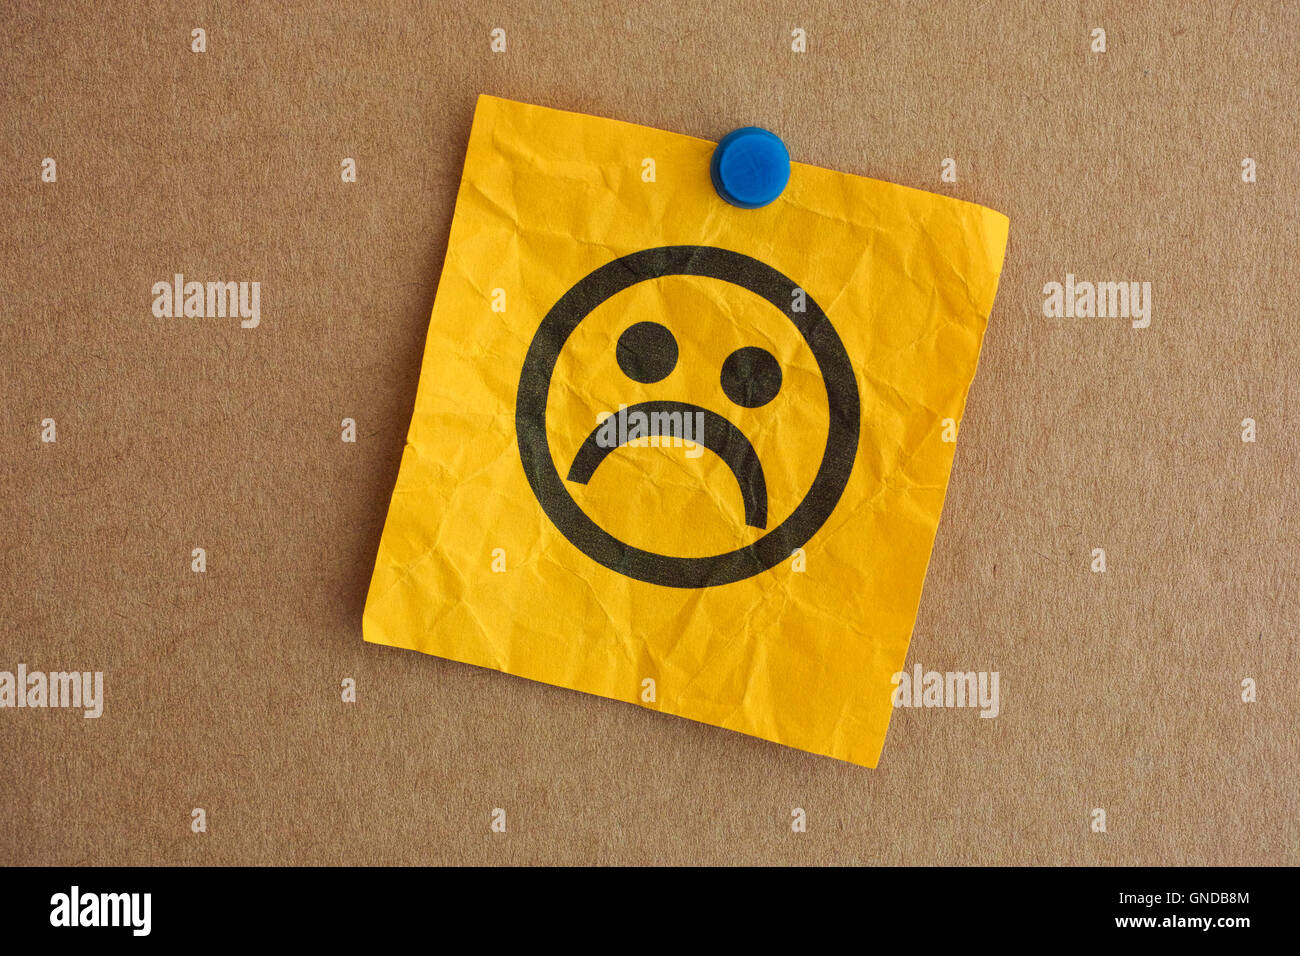 Paper note with sad face closeup stock photo 116464228 alamy paper note with sad face closeup buycottarizona Gallery